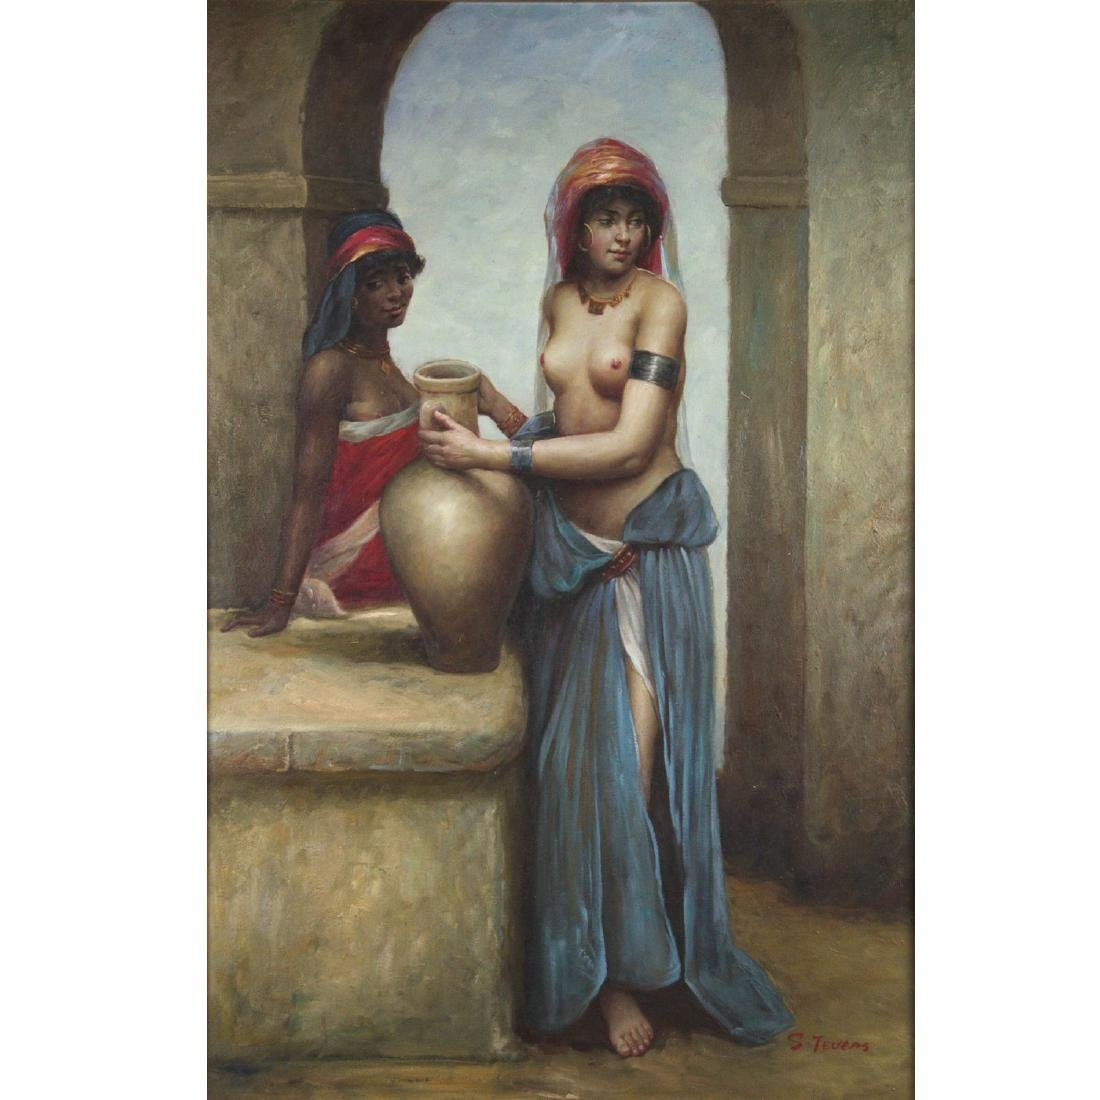 Unidentified Artist - Two Girls with a Water Jug, Oil